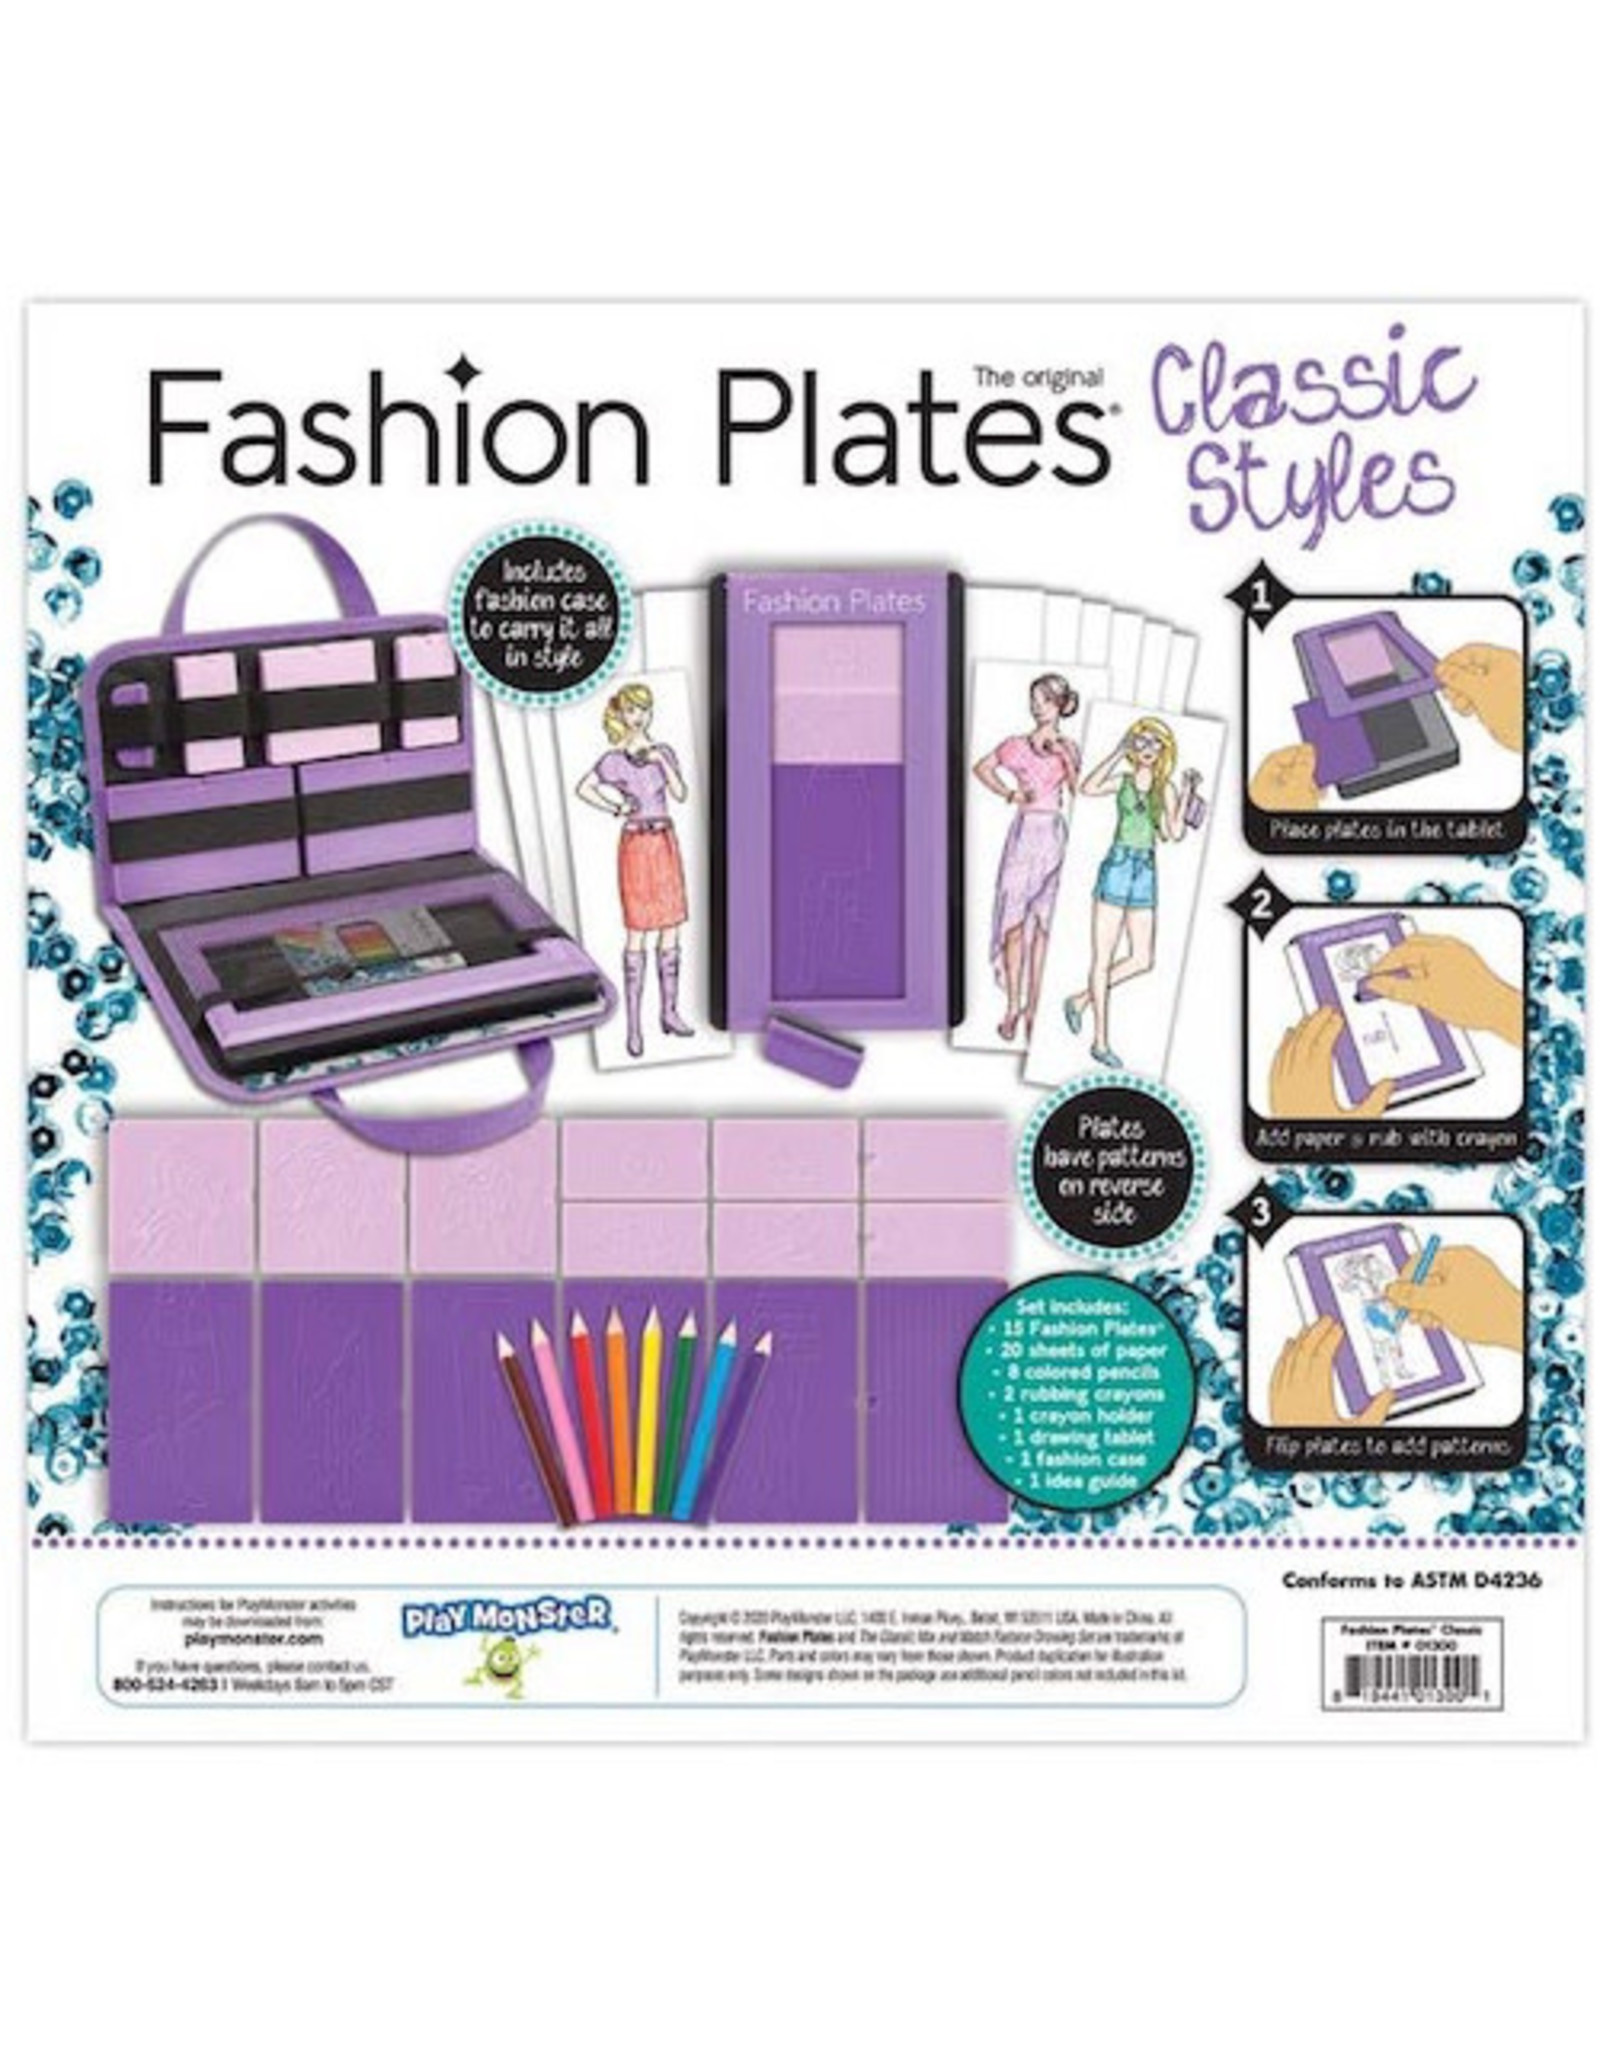 Play Monster Fashion Plates Classic Styles